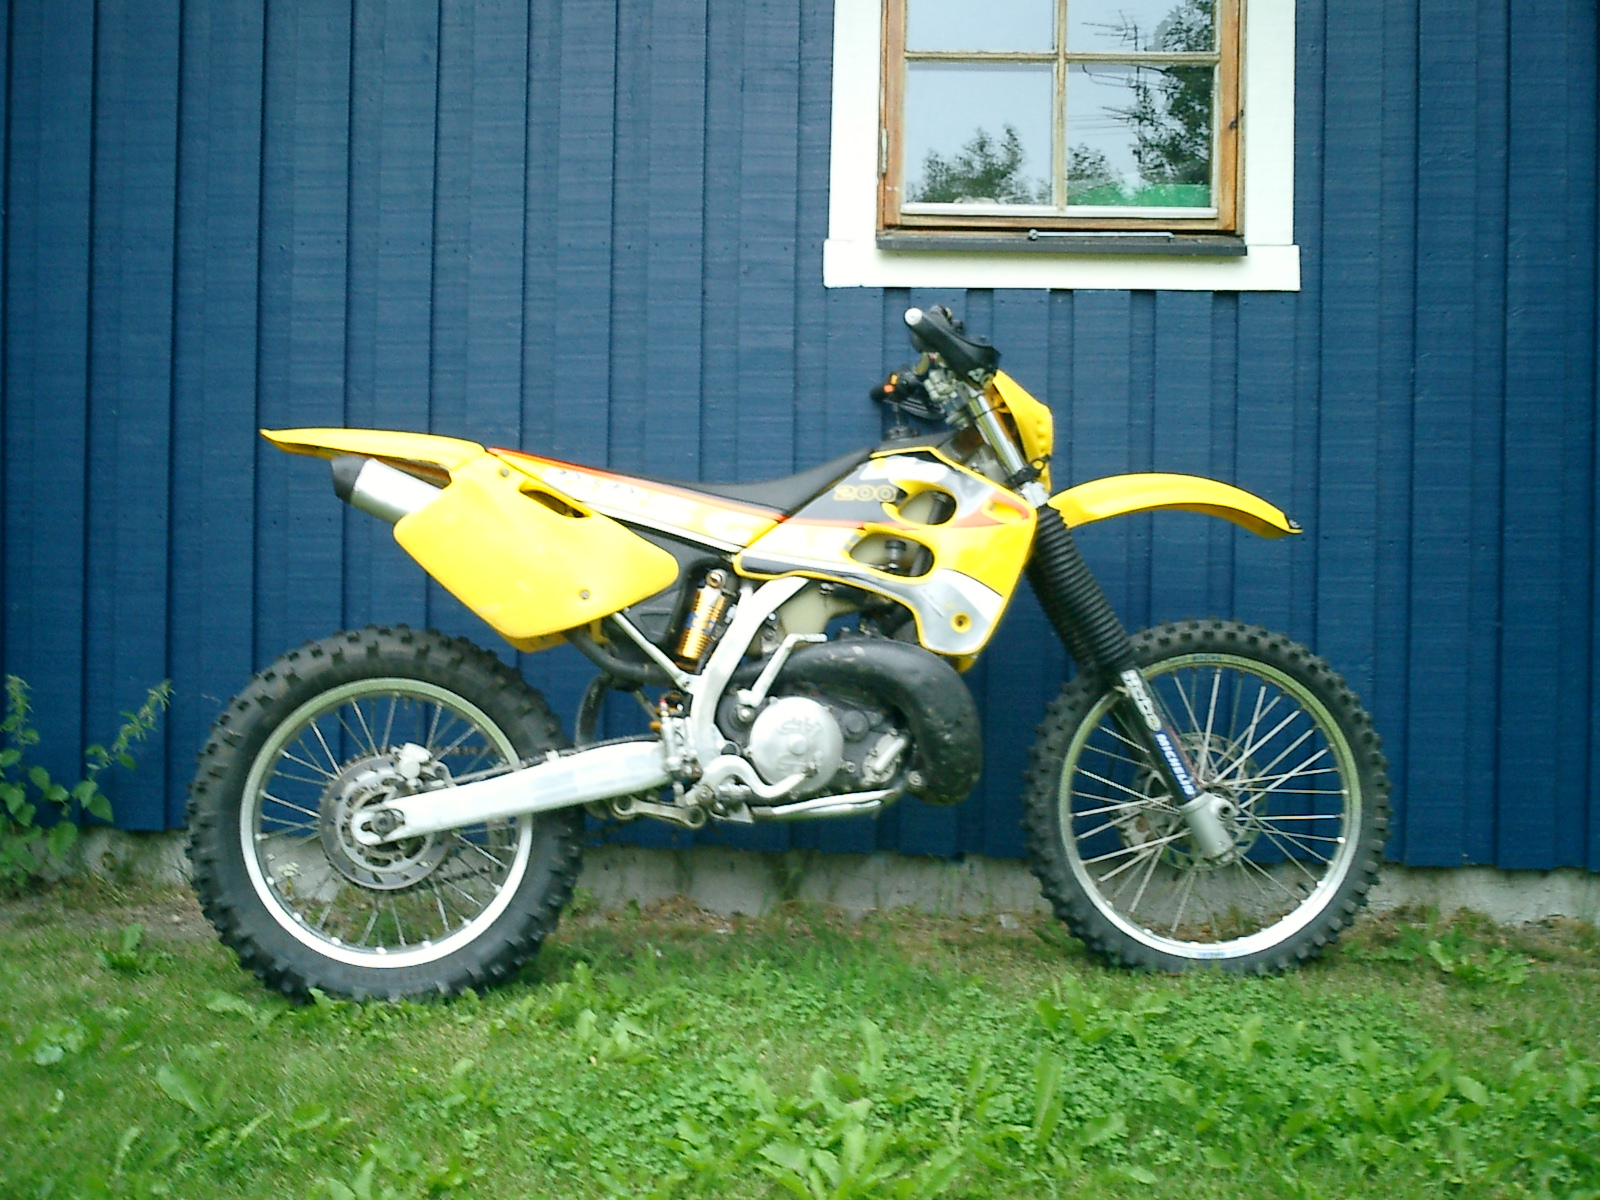 GAS GAS EC 50 Rookie 2002 images #94426